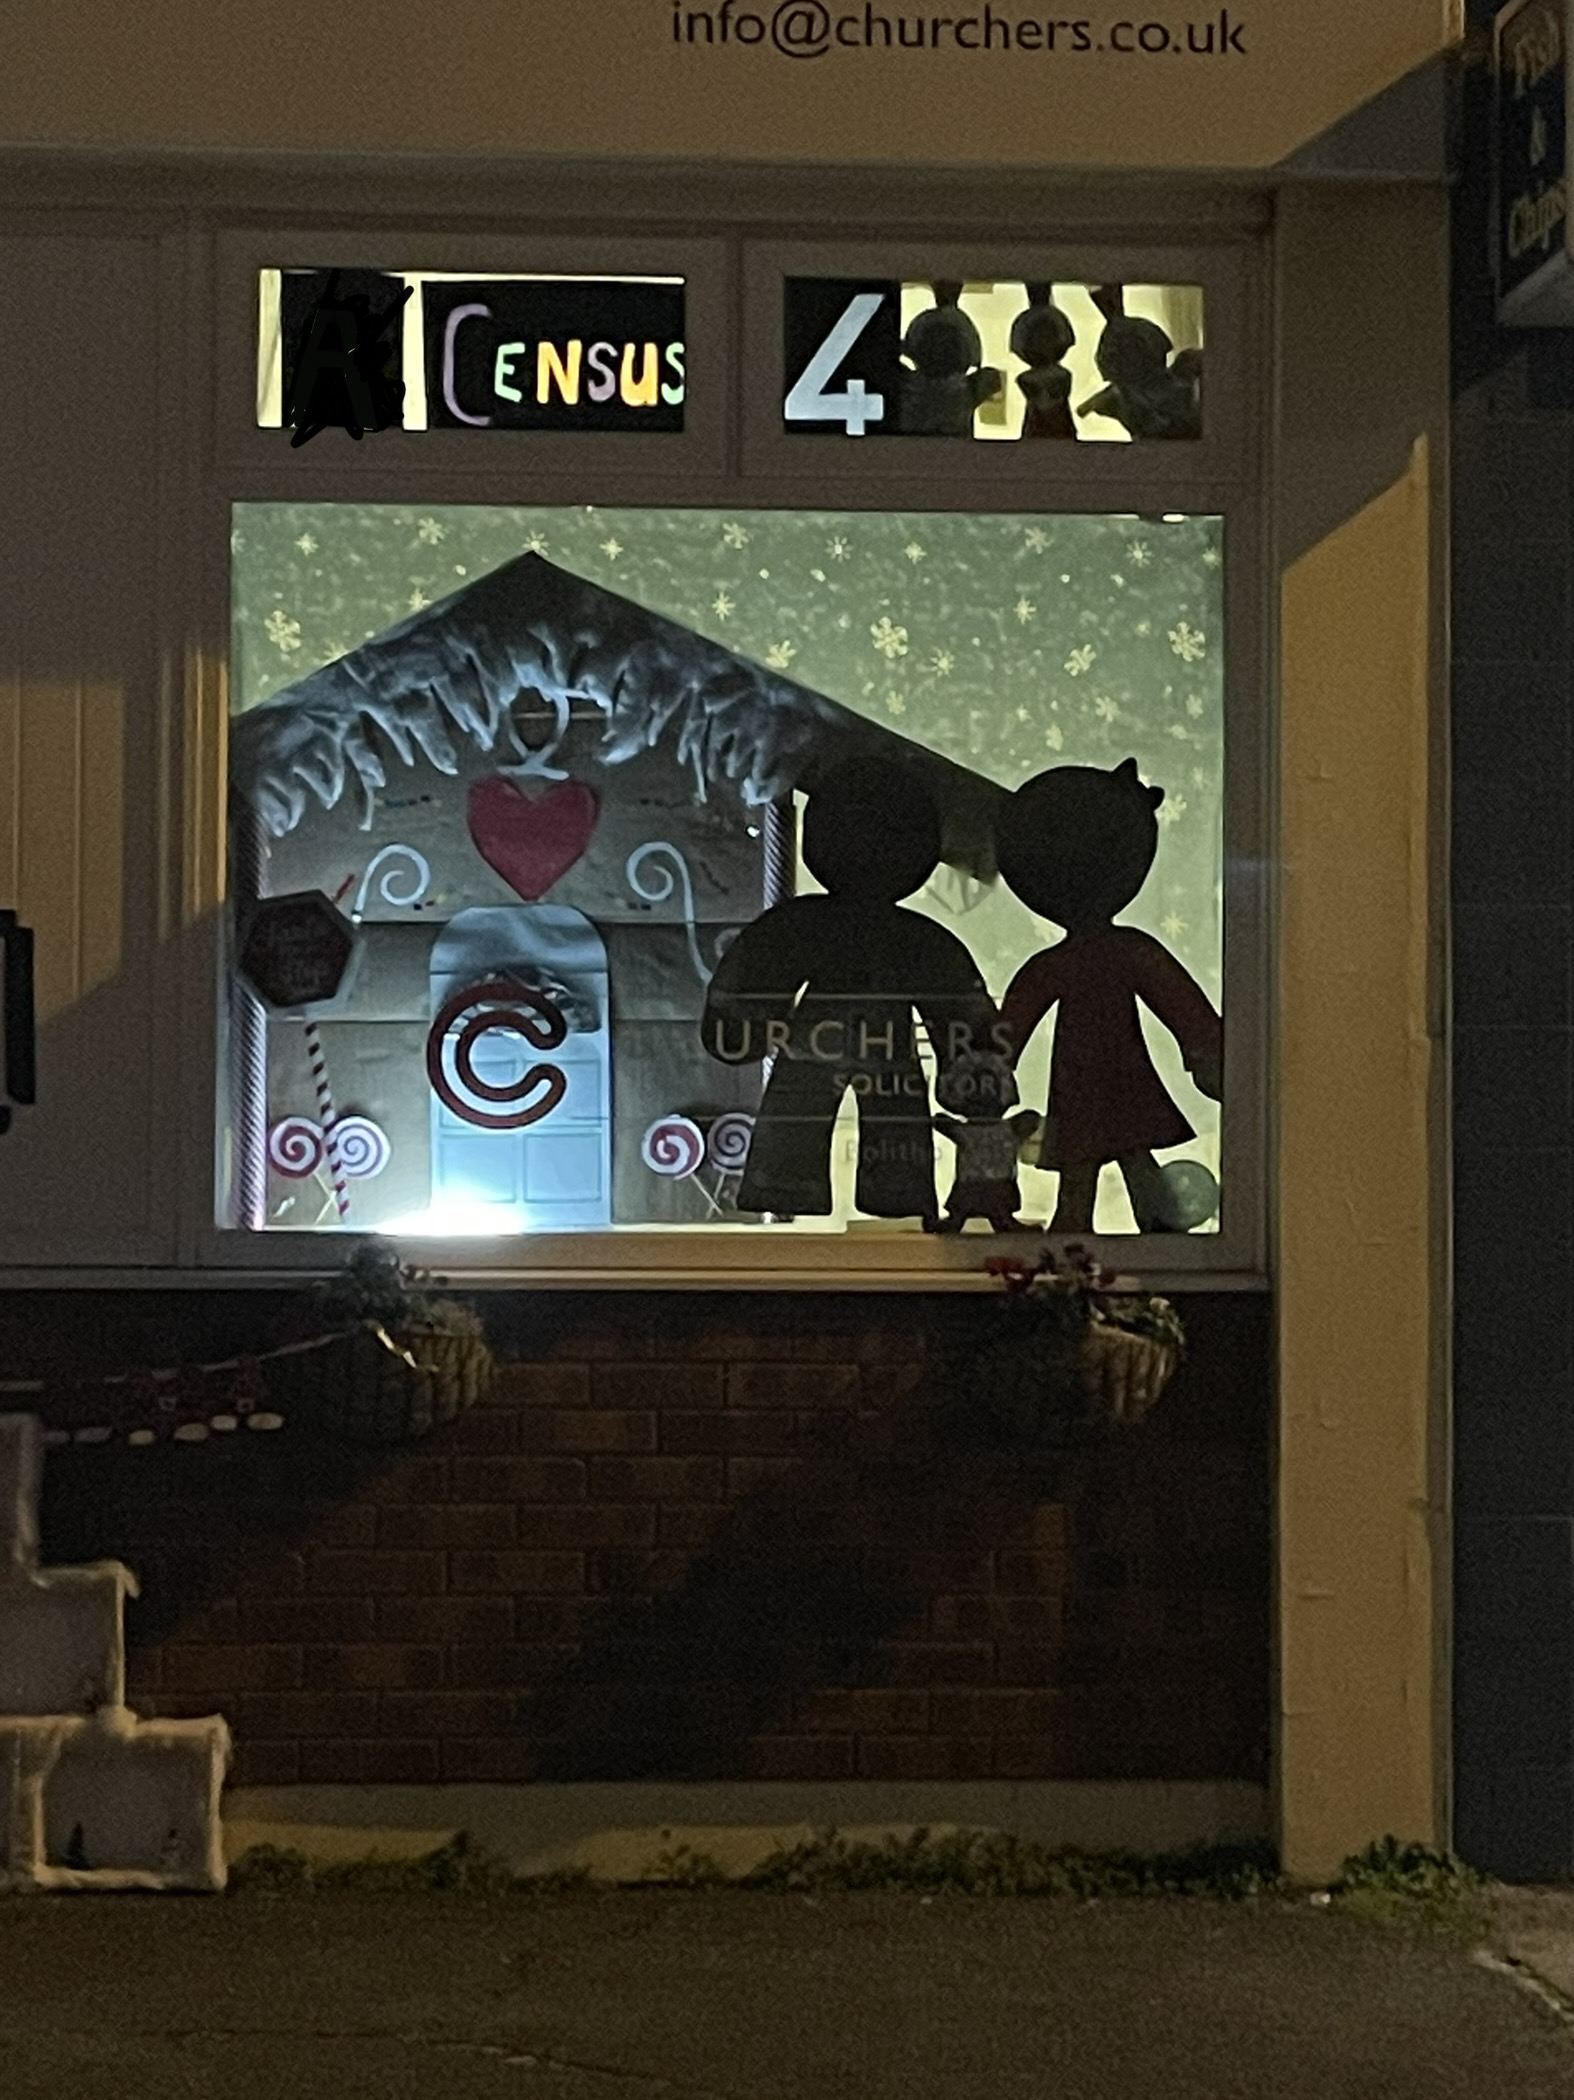 A photograph of the fourth Advent window on the trail